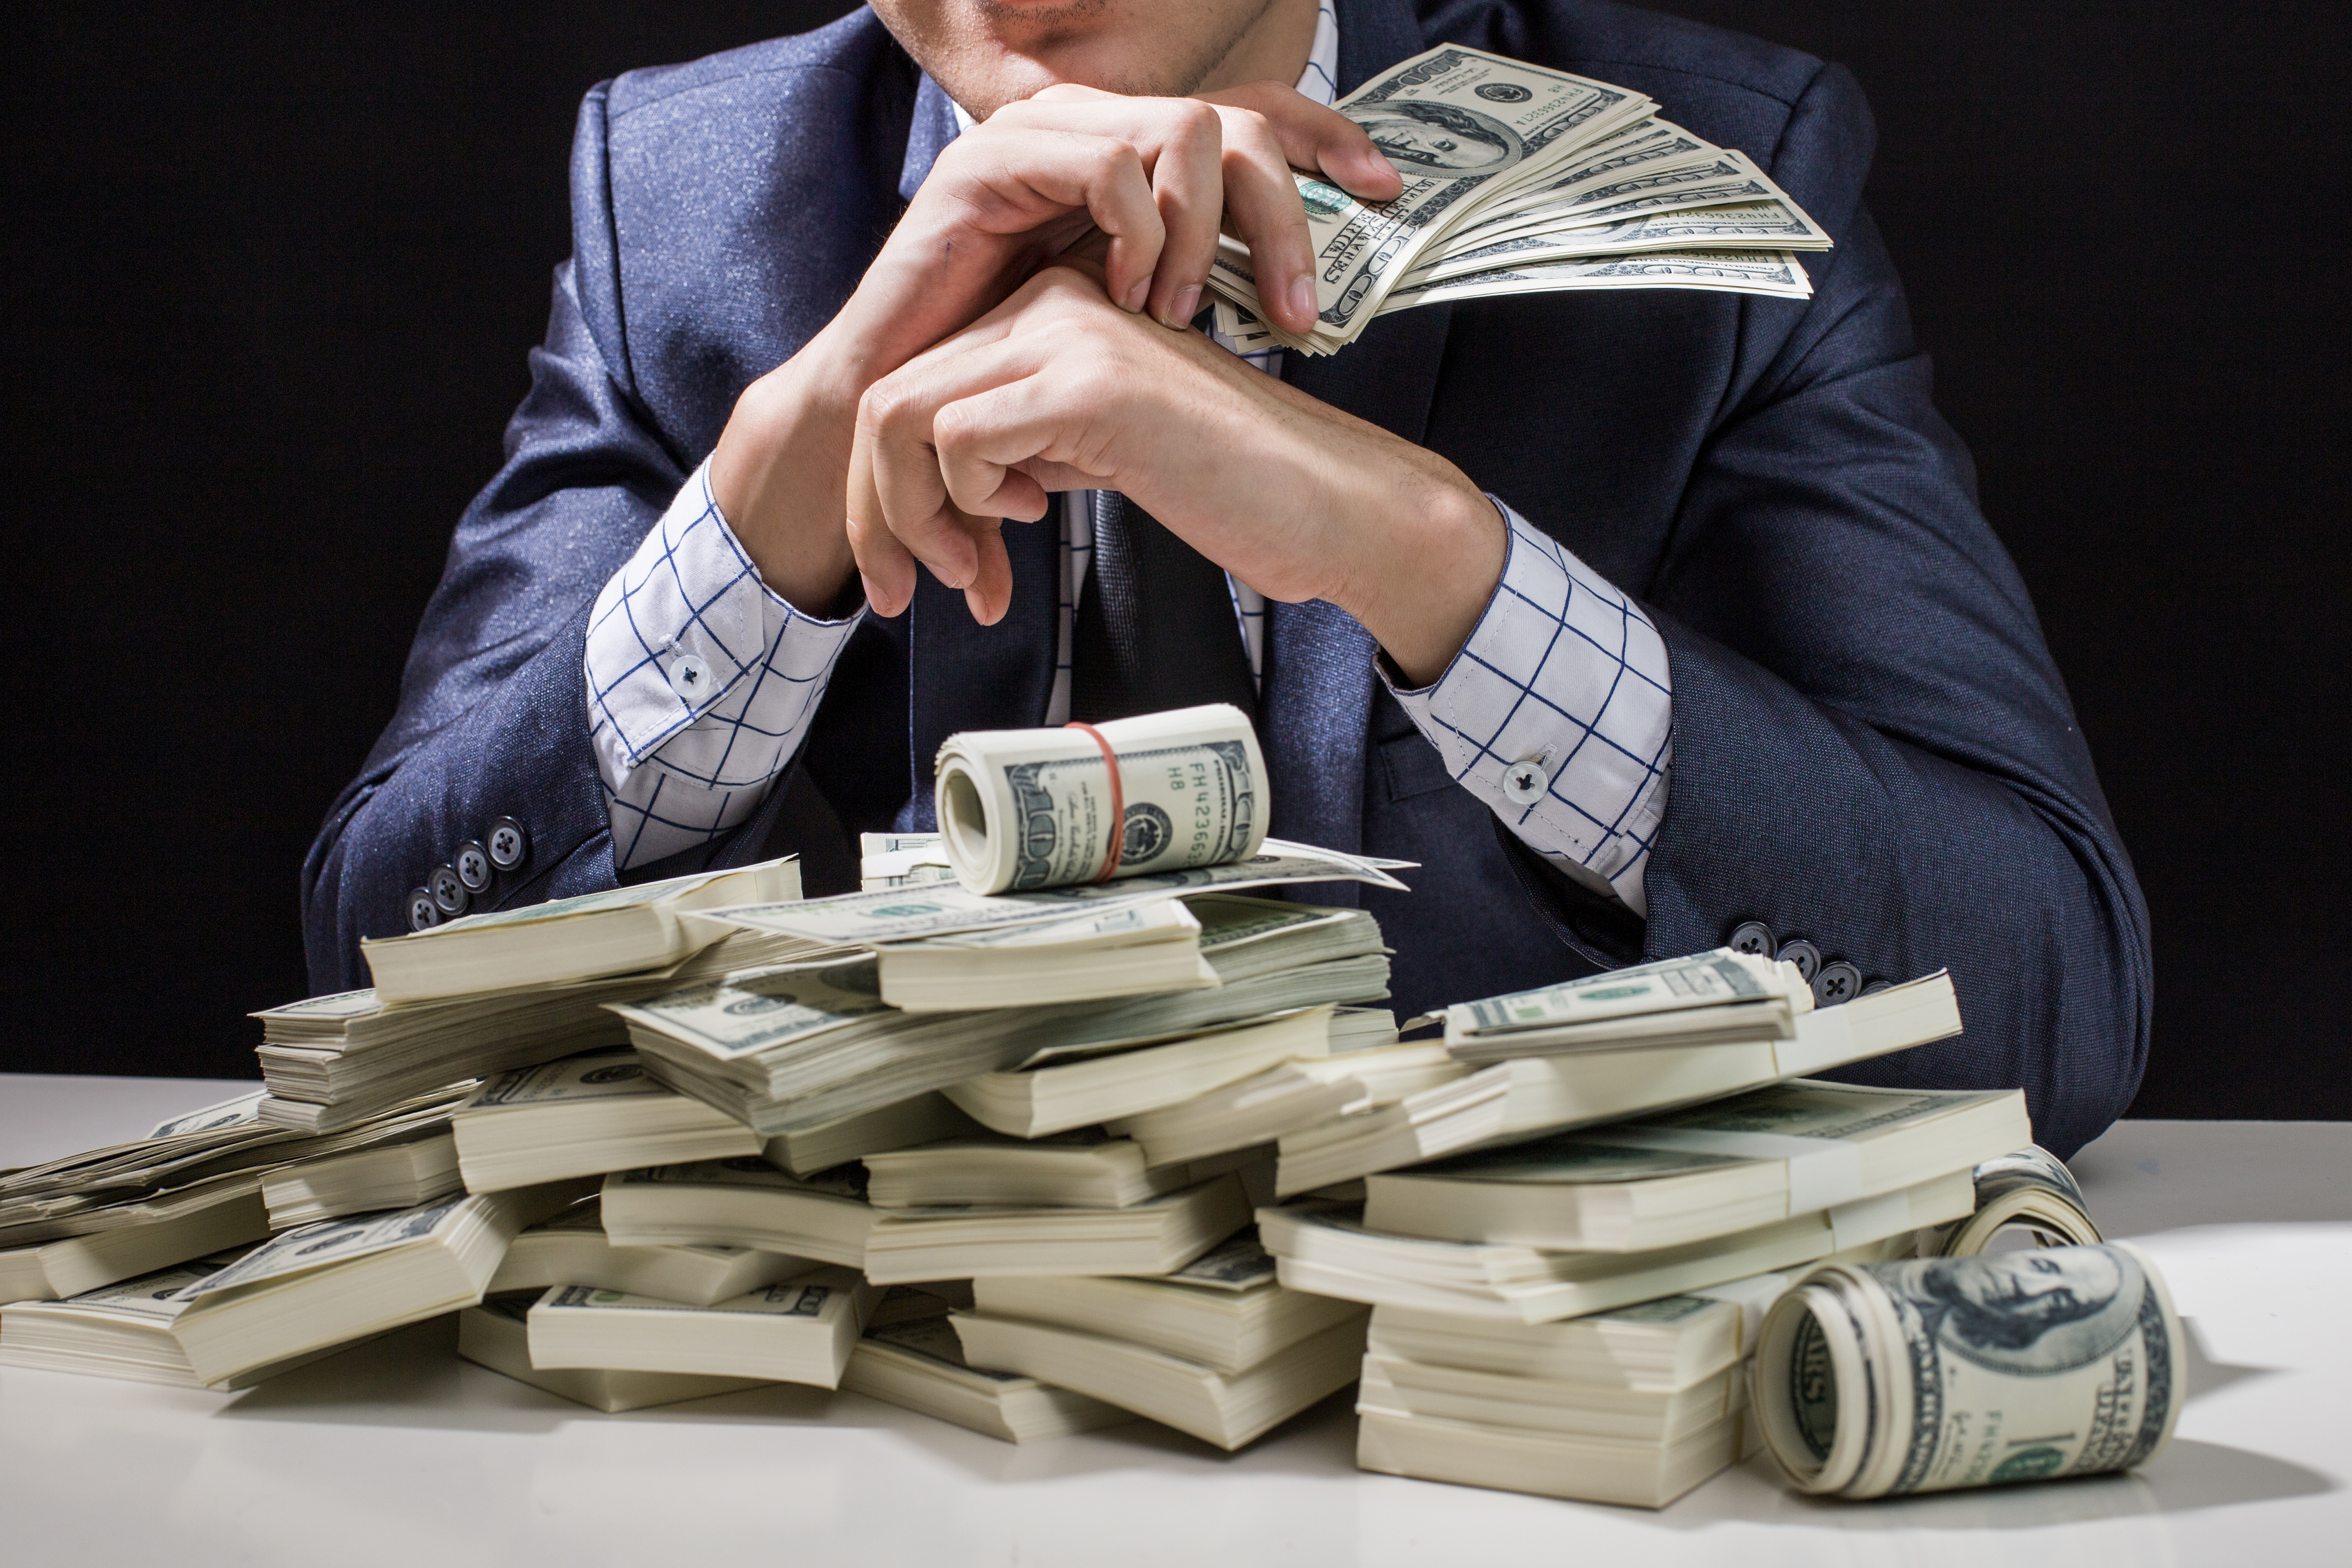 Man in suit sitting in front of pile of cash